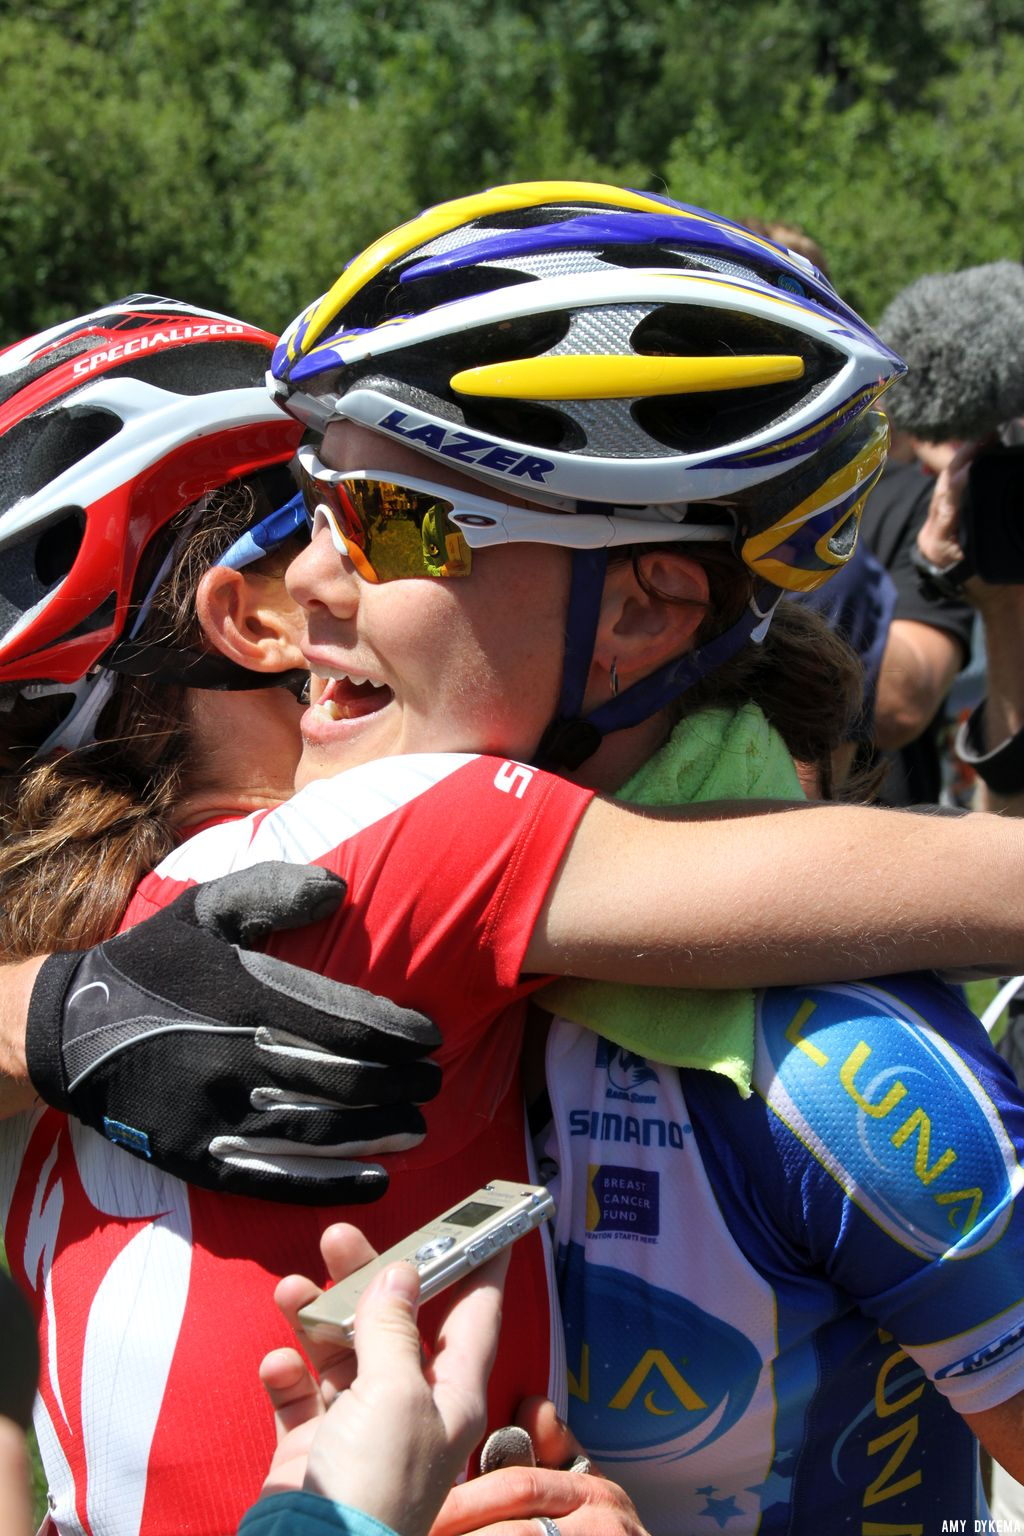 Lea Davison and Georgia Gould congratulating each other. ©Amy Dykema